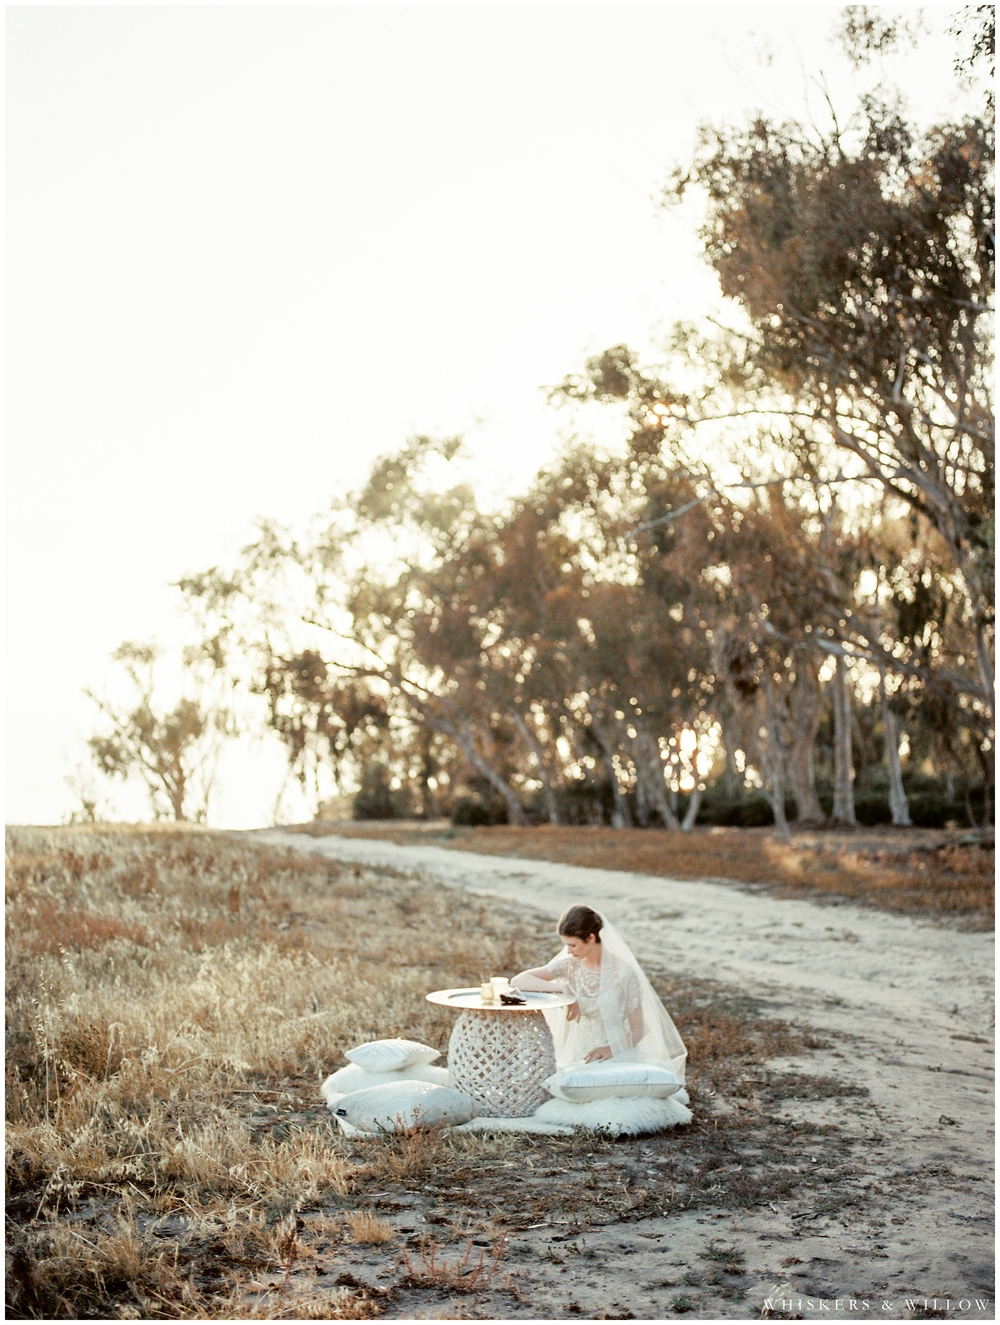 Bohemian Bridal Portrait - Jenny Packham gown - San Diego Wedding Photographer - Whiskers and Willow Photography